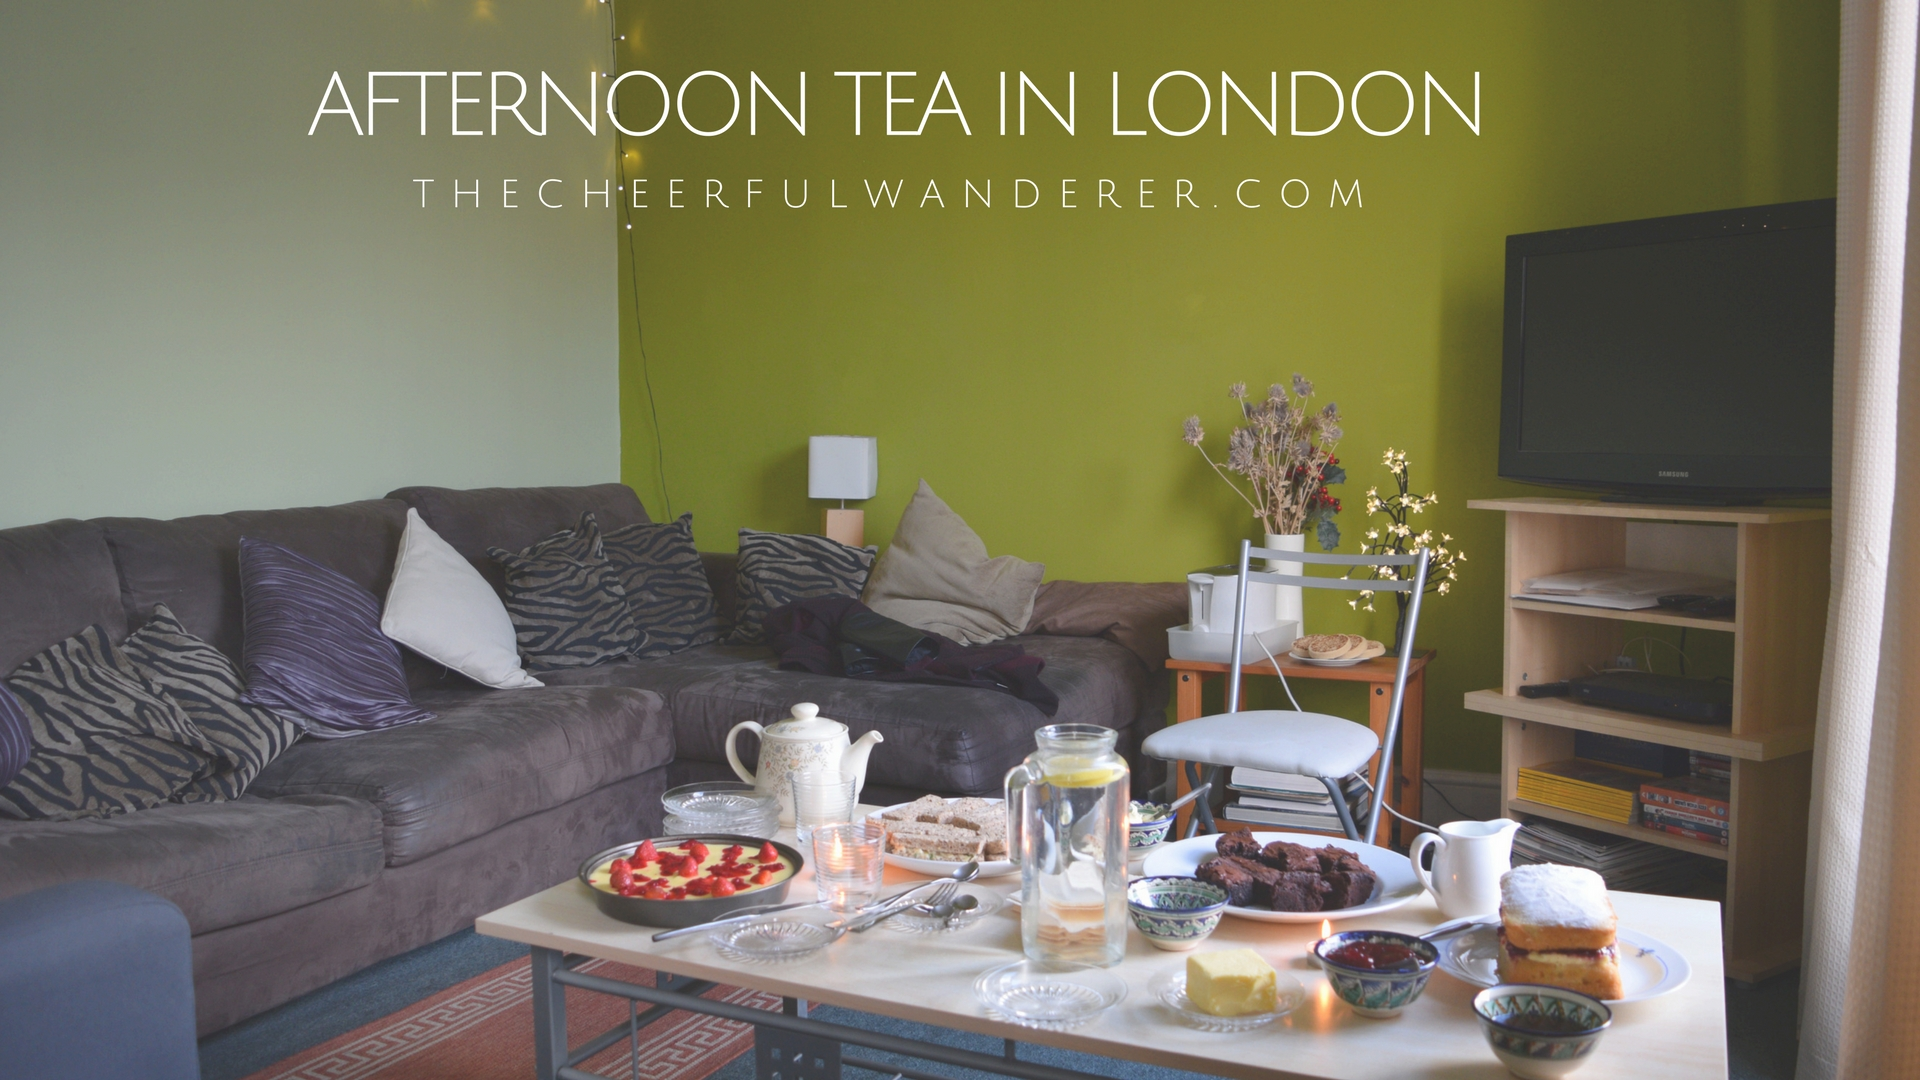 An Affordable Freshly Prepared Afternoon Tea in London | The Cheerful Wanderer